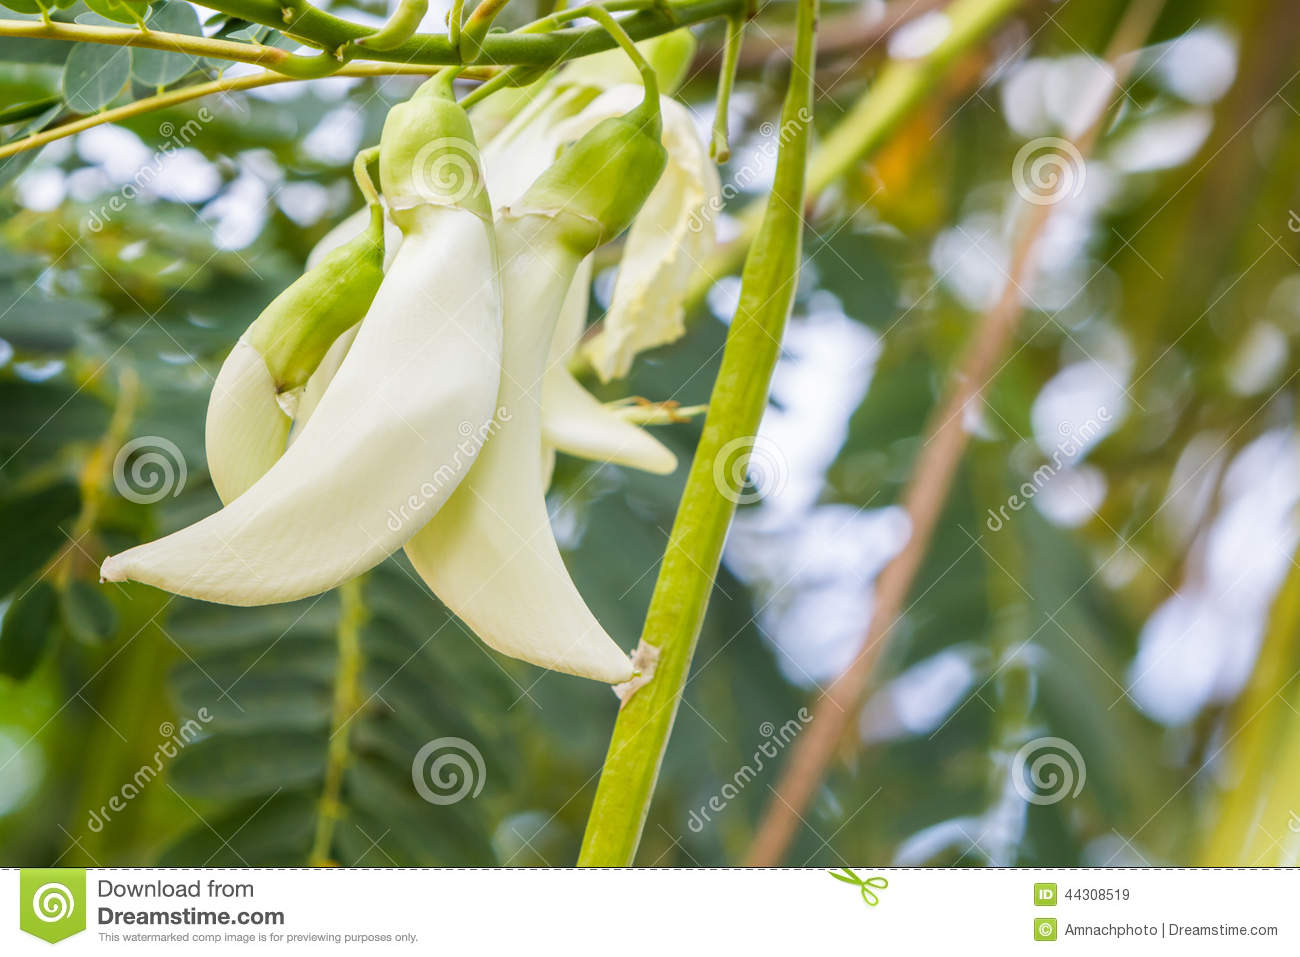 Vegetable Humming Bird, Sesbania Grandiflora, Agasta. Stock Photo.